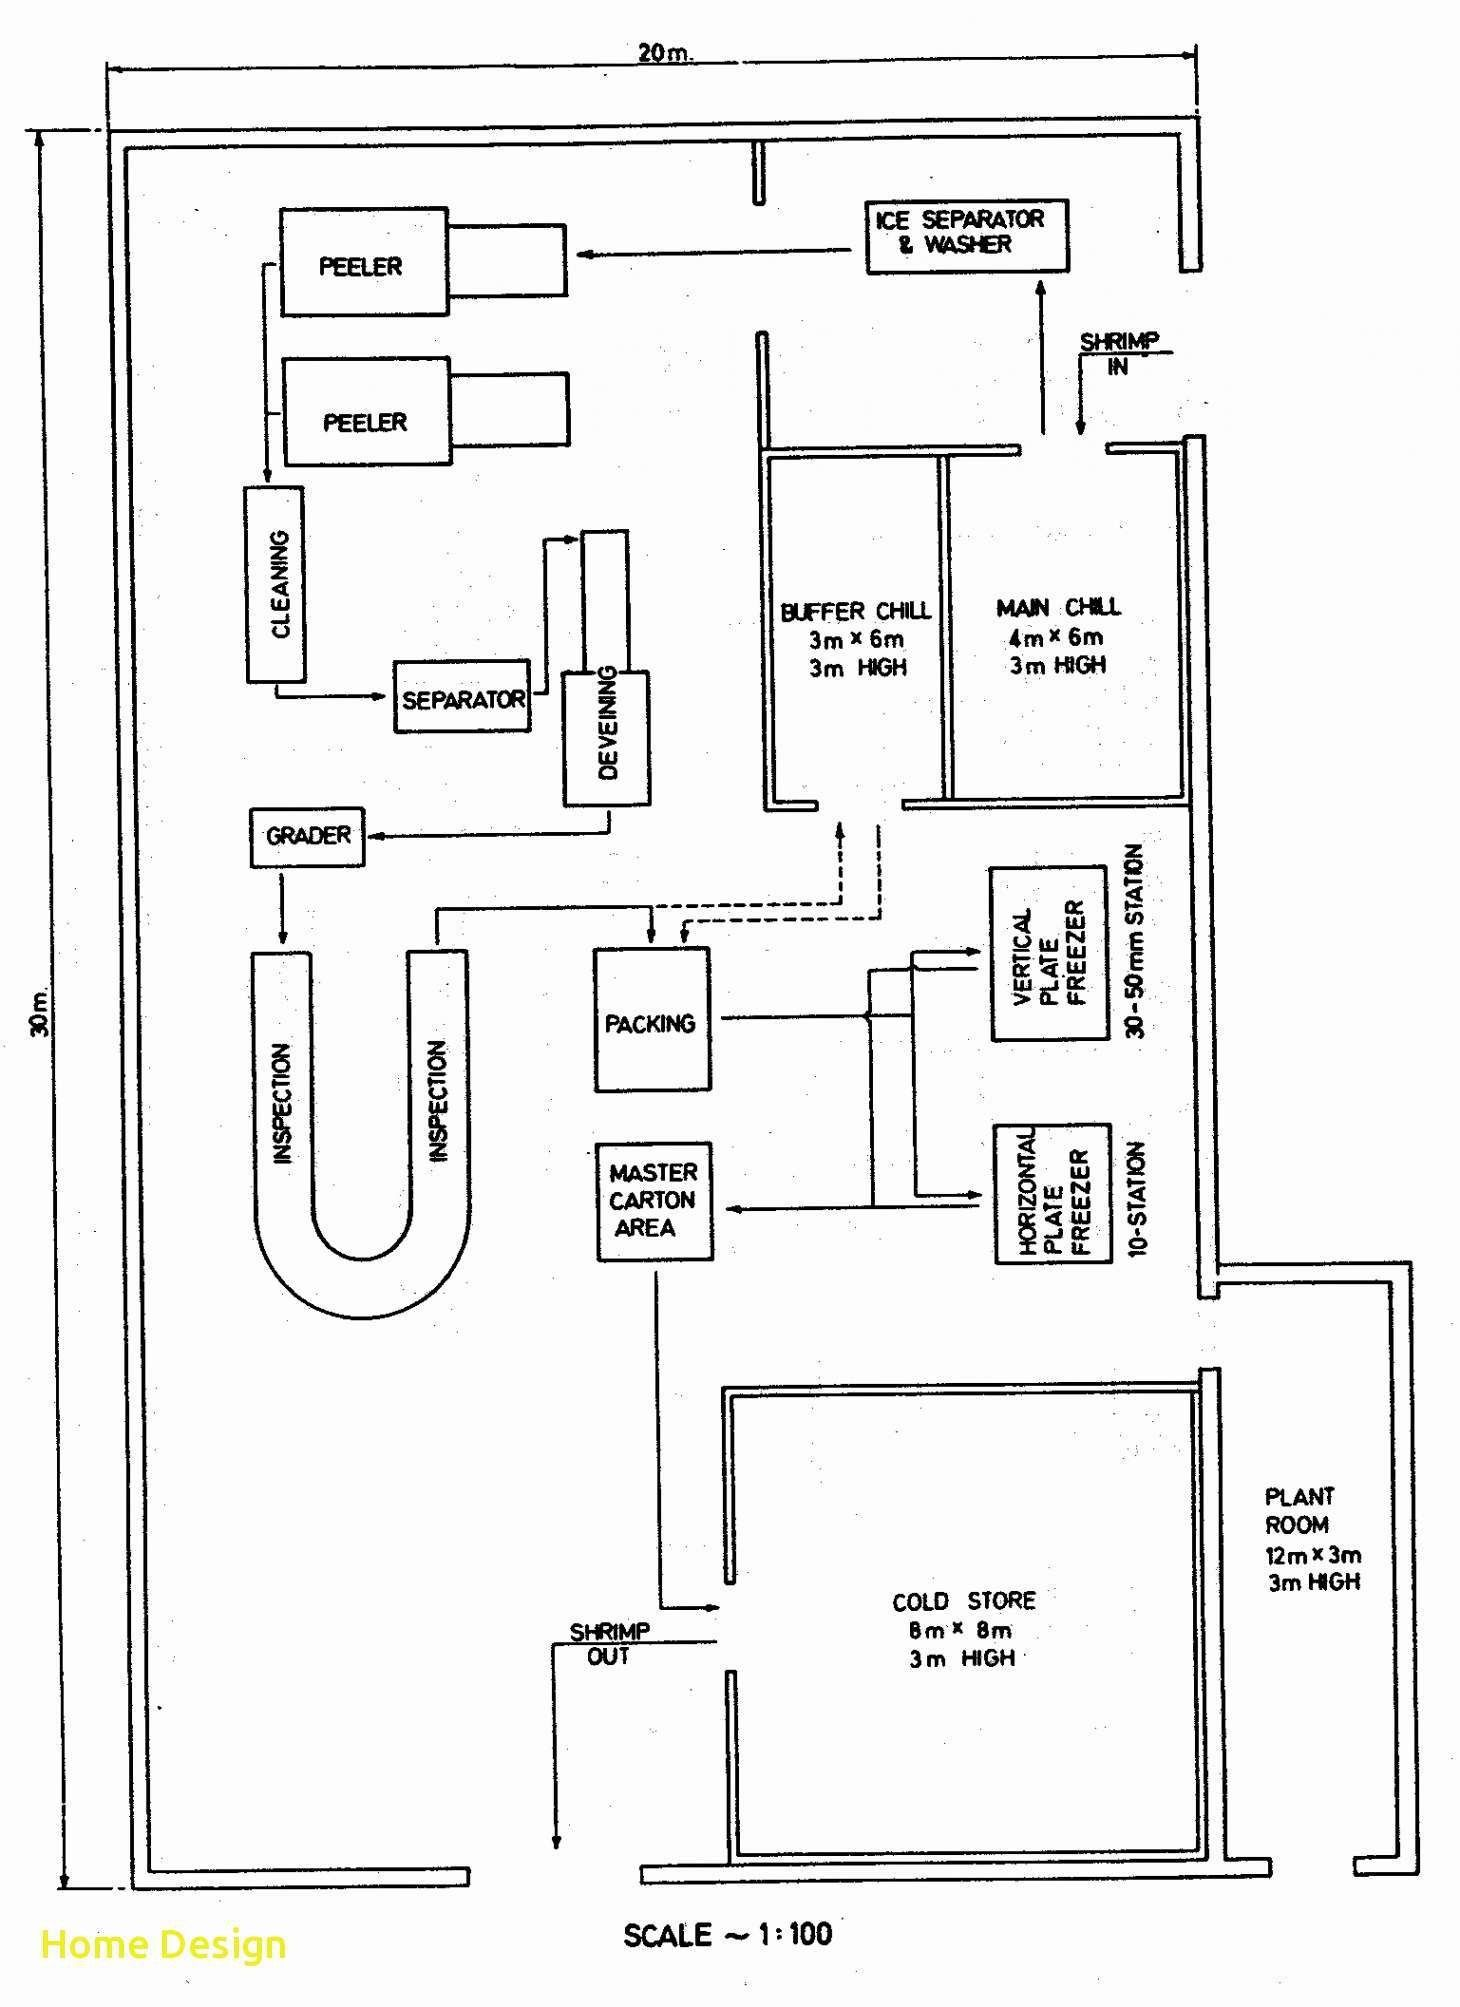 17 Fascinating Full Bathroom Floor Plan To Add To The Beauty Of Your Home Floor Plan Design Free Floor Plans Bathroom Floor Plans